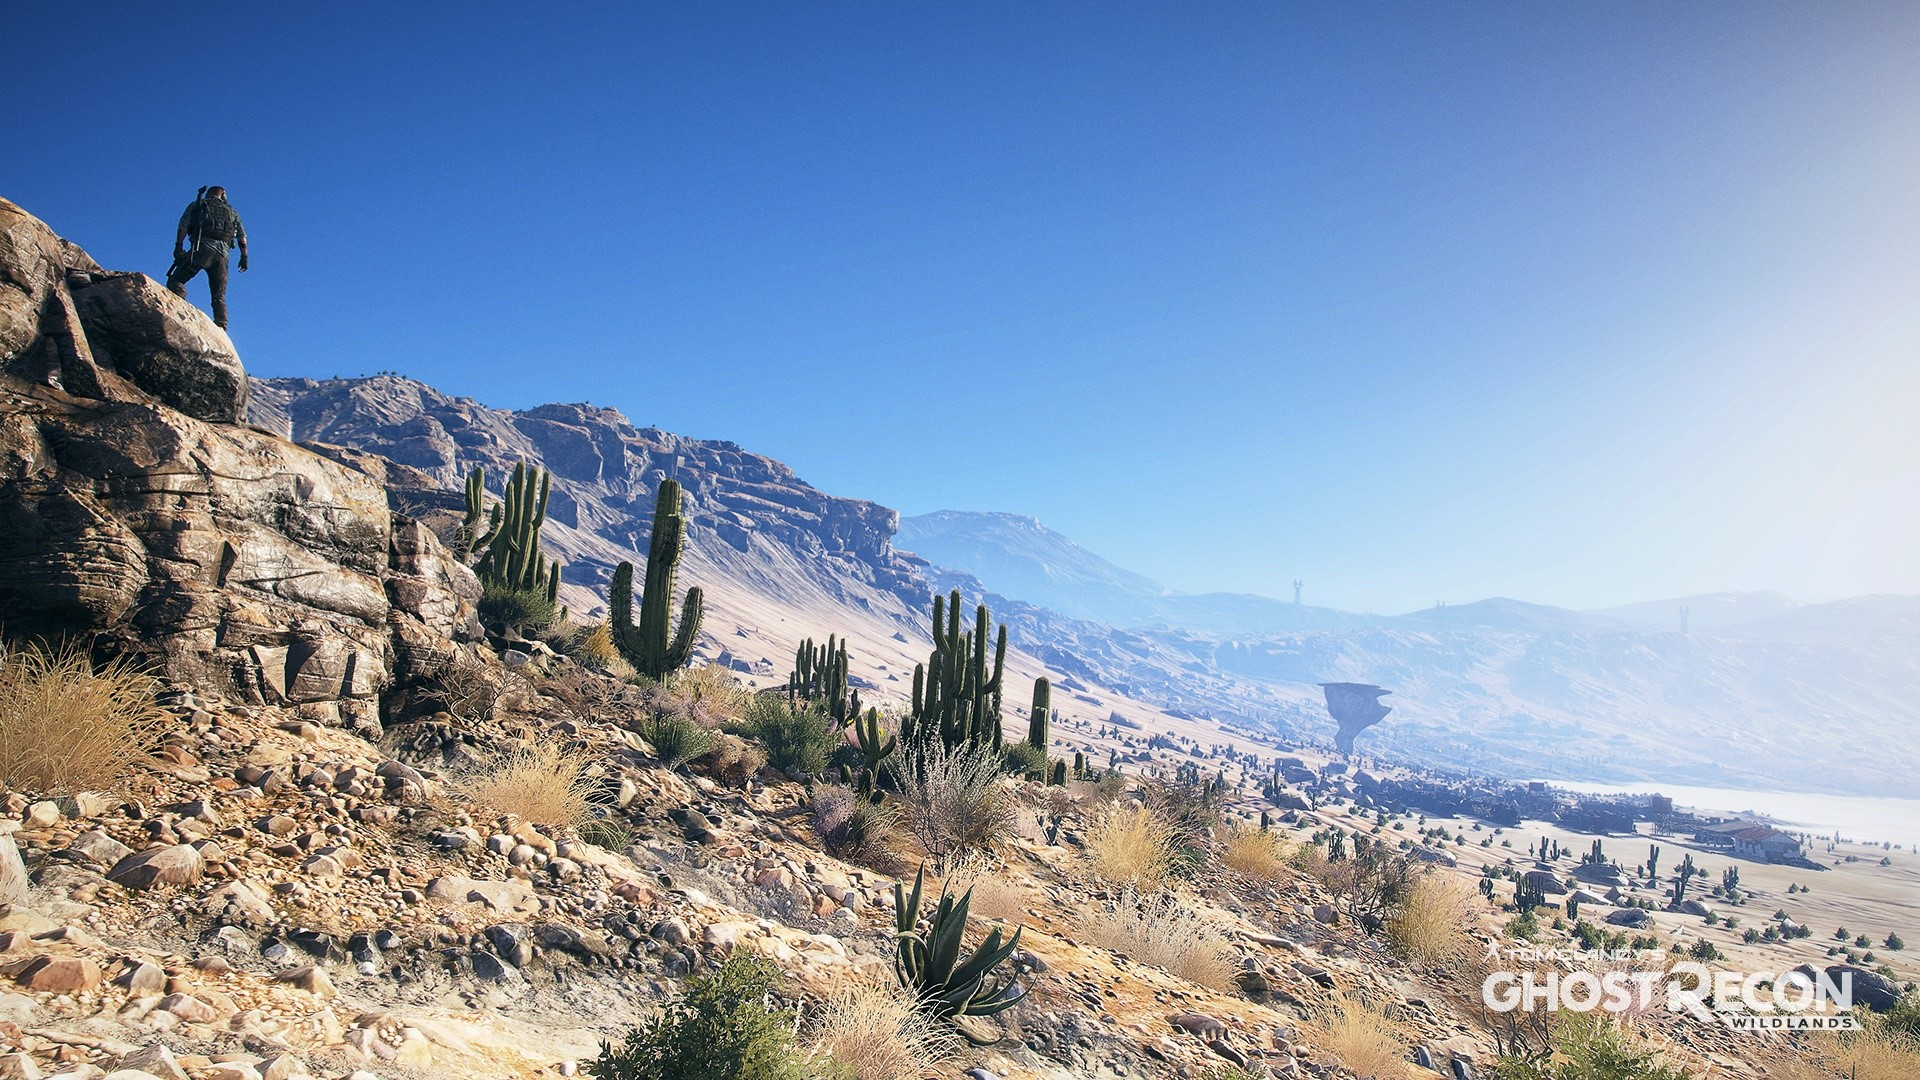 Wallpaper Landscape of Ghost Recon 3